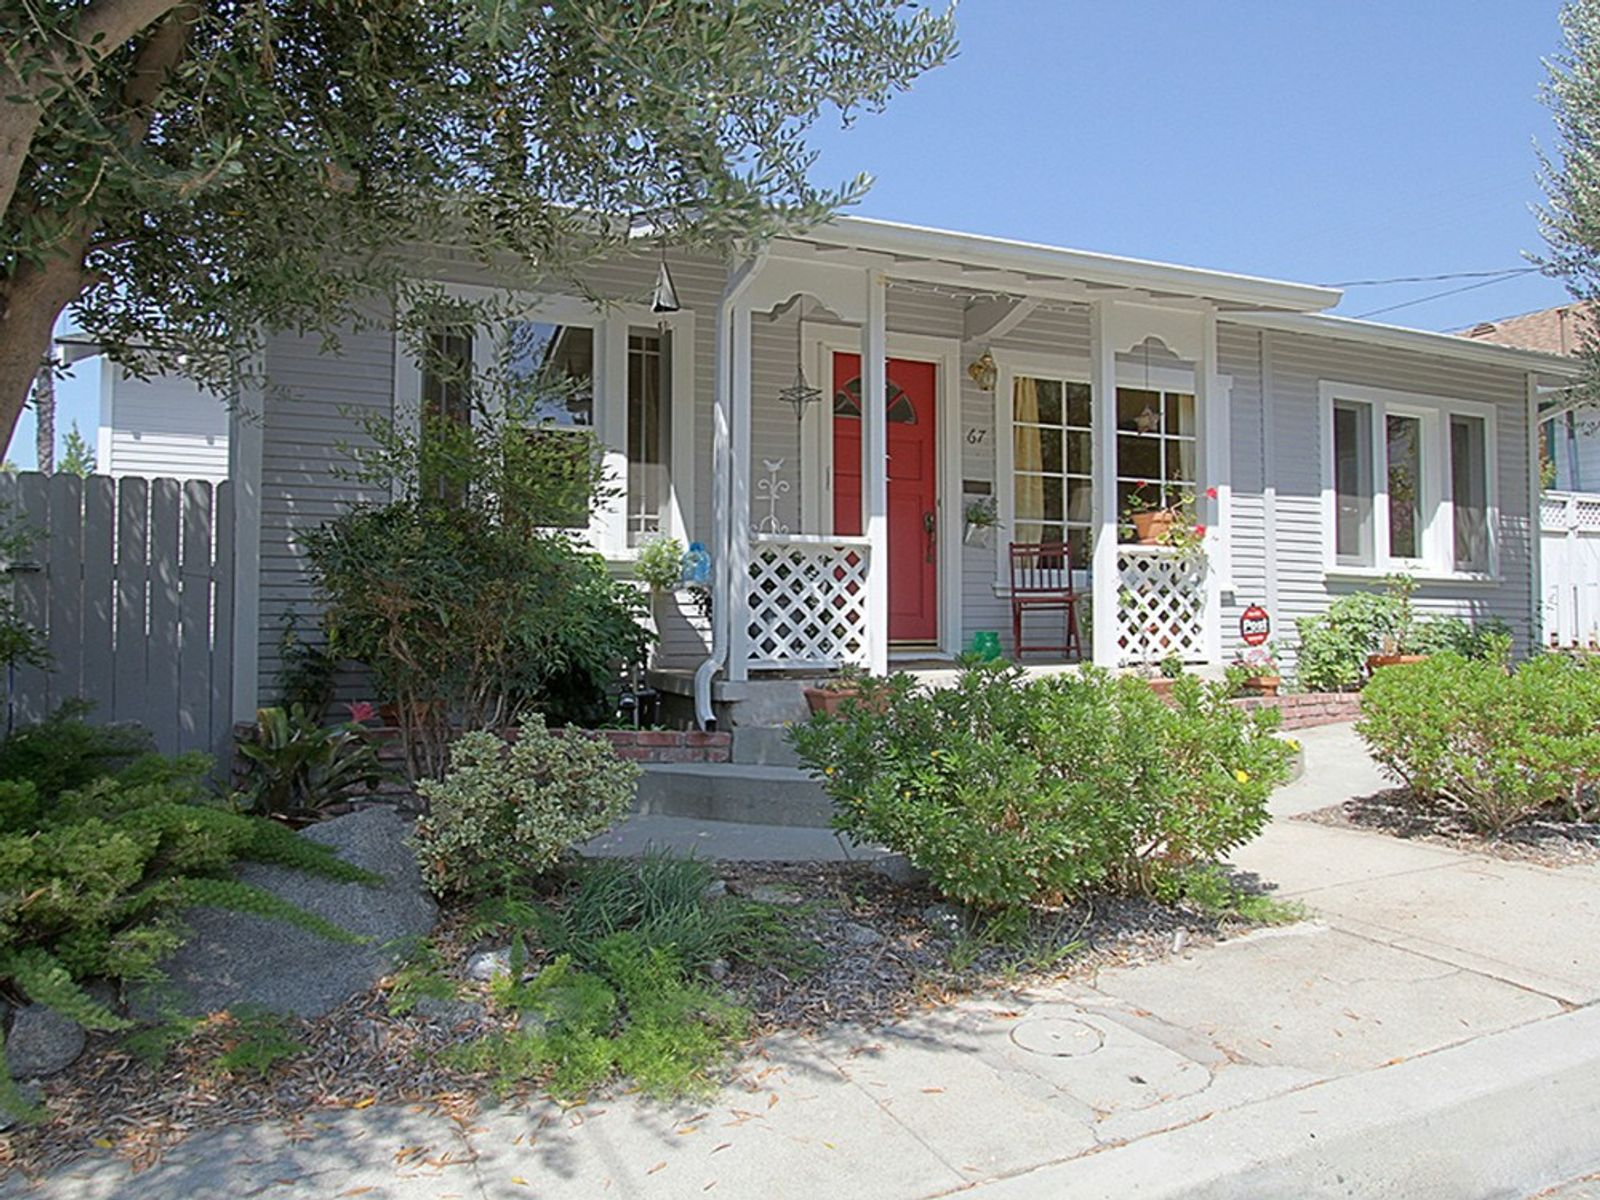 Darling Cottage, Sierra Madre CA Single Family Home - Pasadena Real Estate